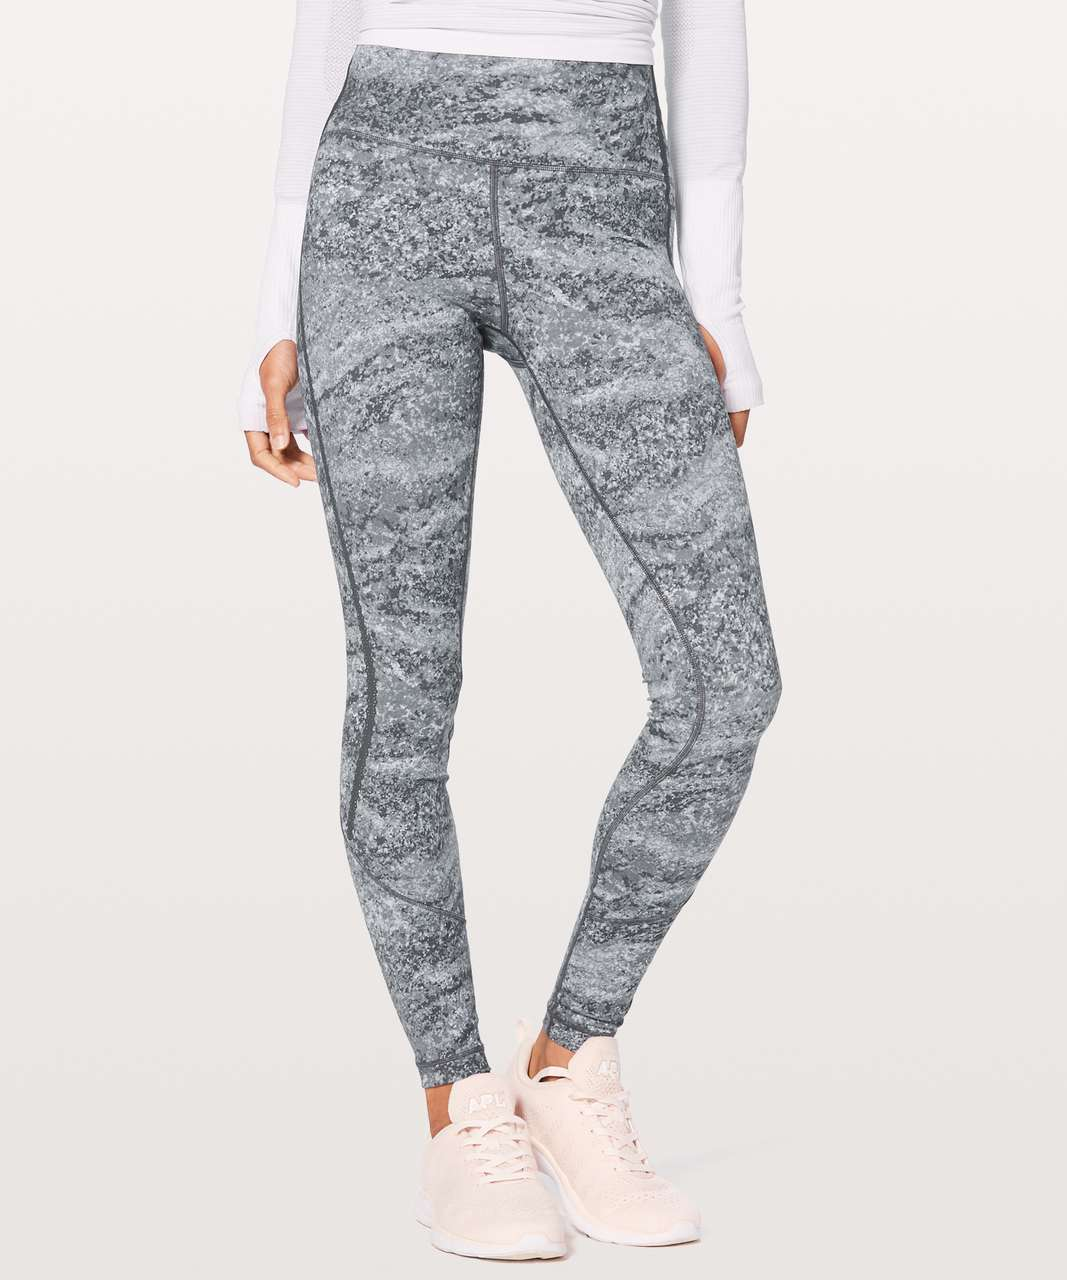 "Lululemon Stop Drop & Squat Tight 28"" - Area Ice Grey"